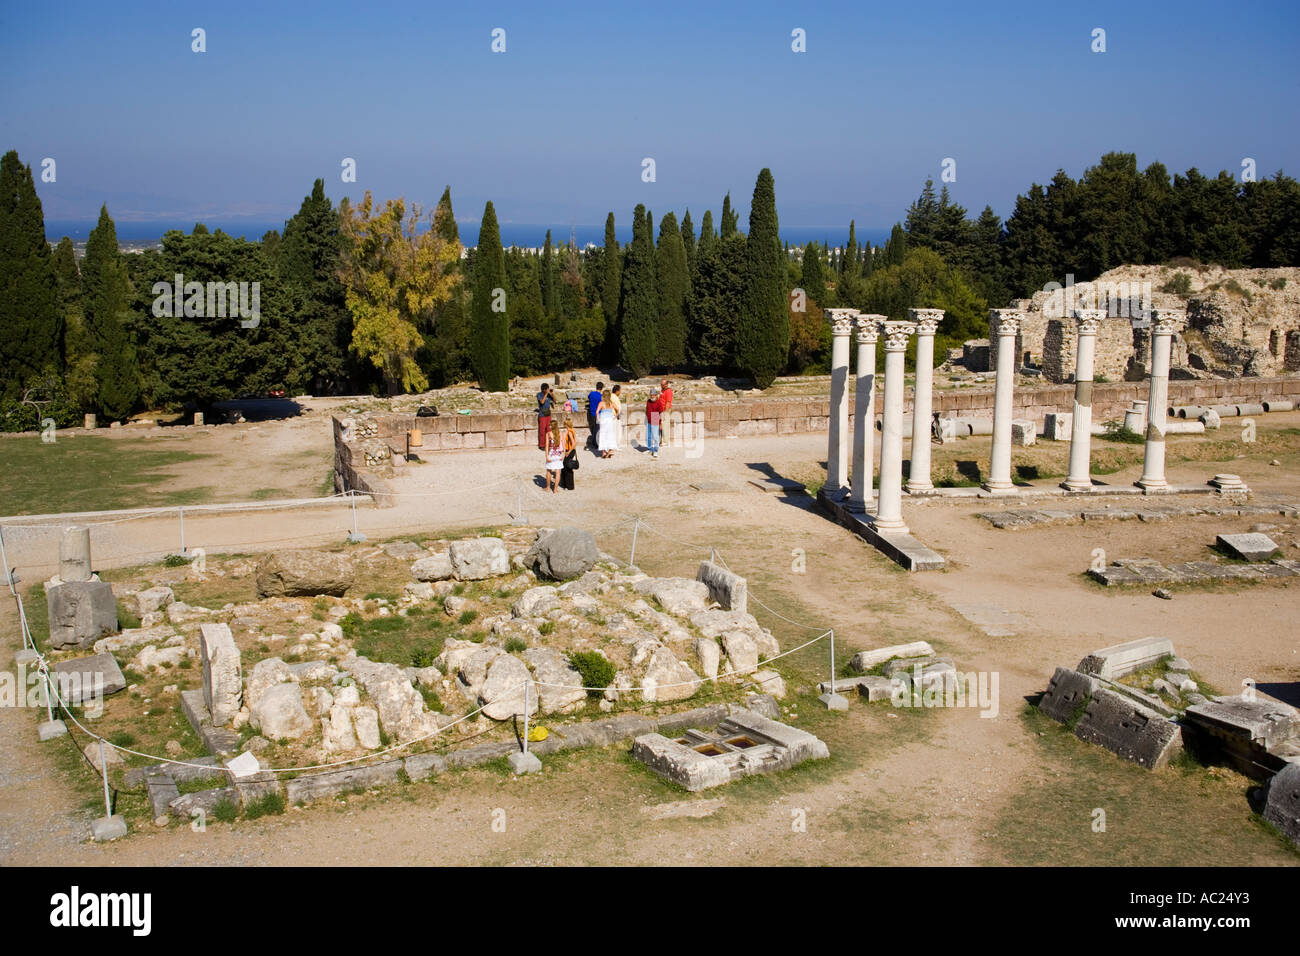 View to Altar of Asclepius and group of tourists in background at temple Asklipieion Kos Town Kos Greece Stock Photo